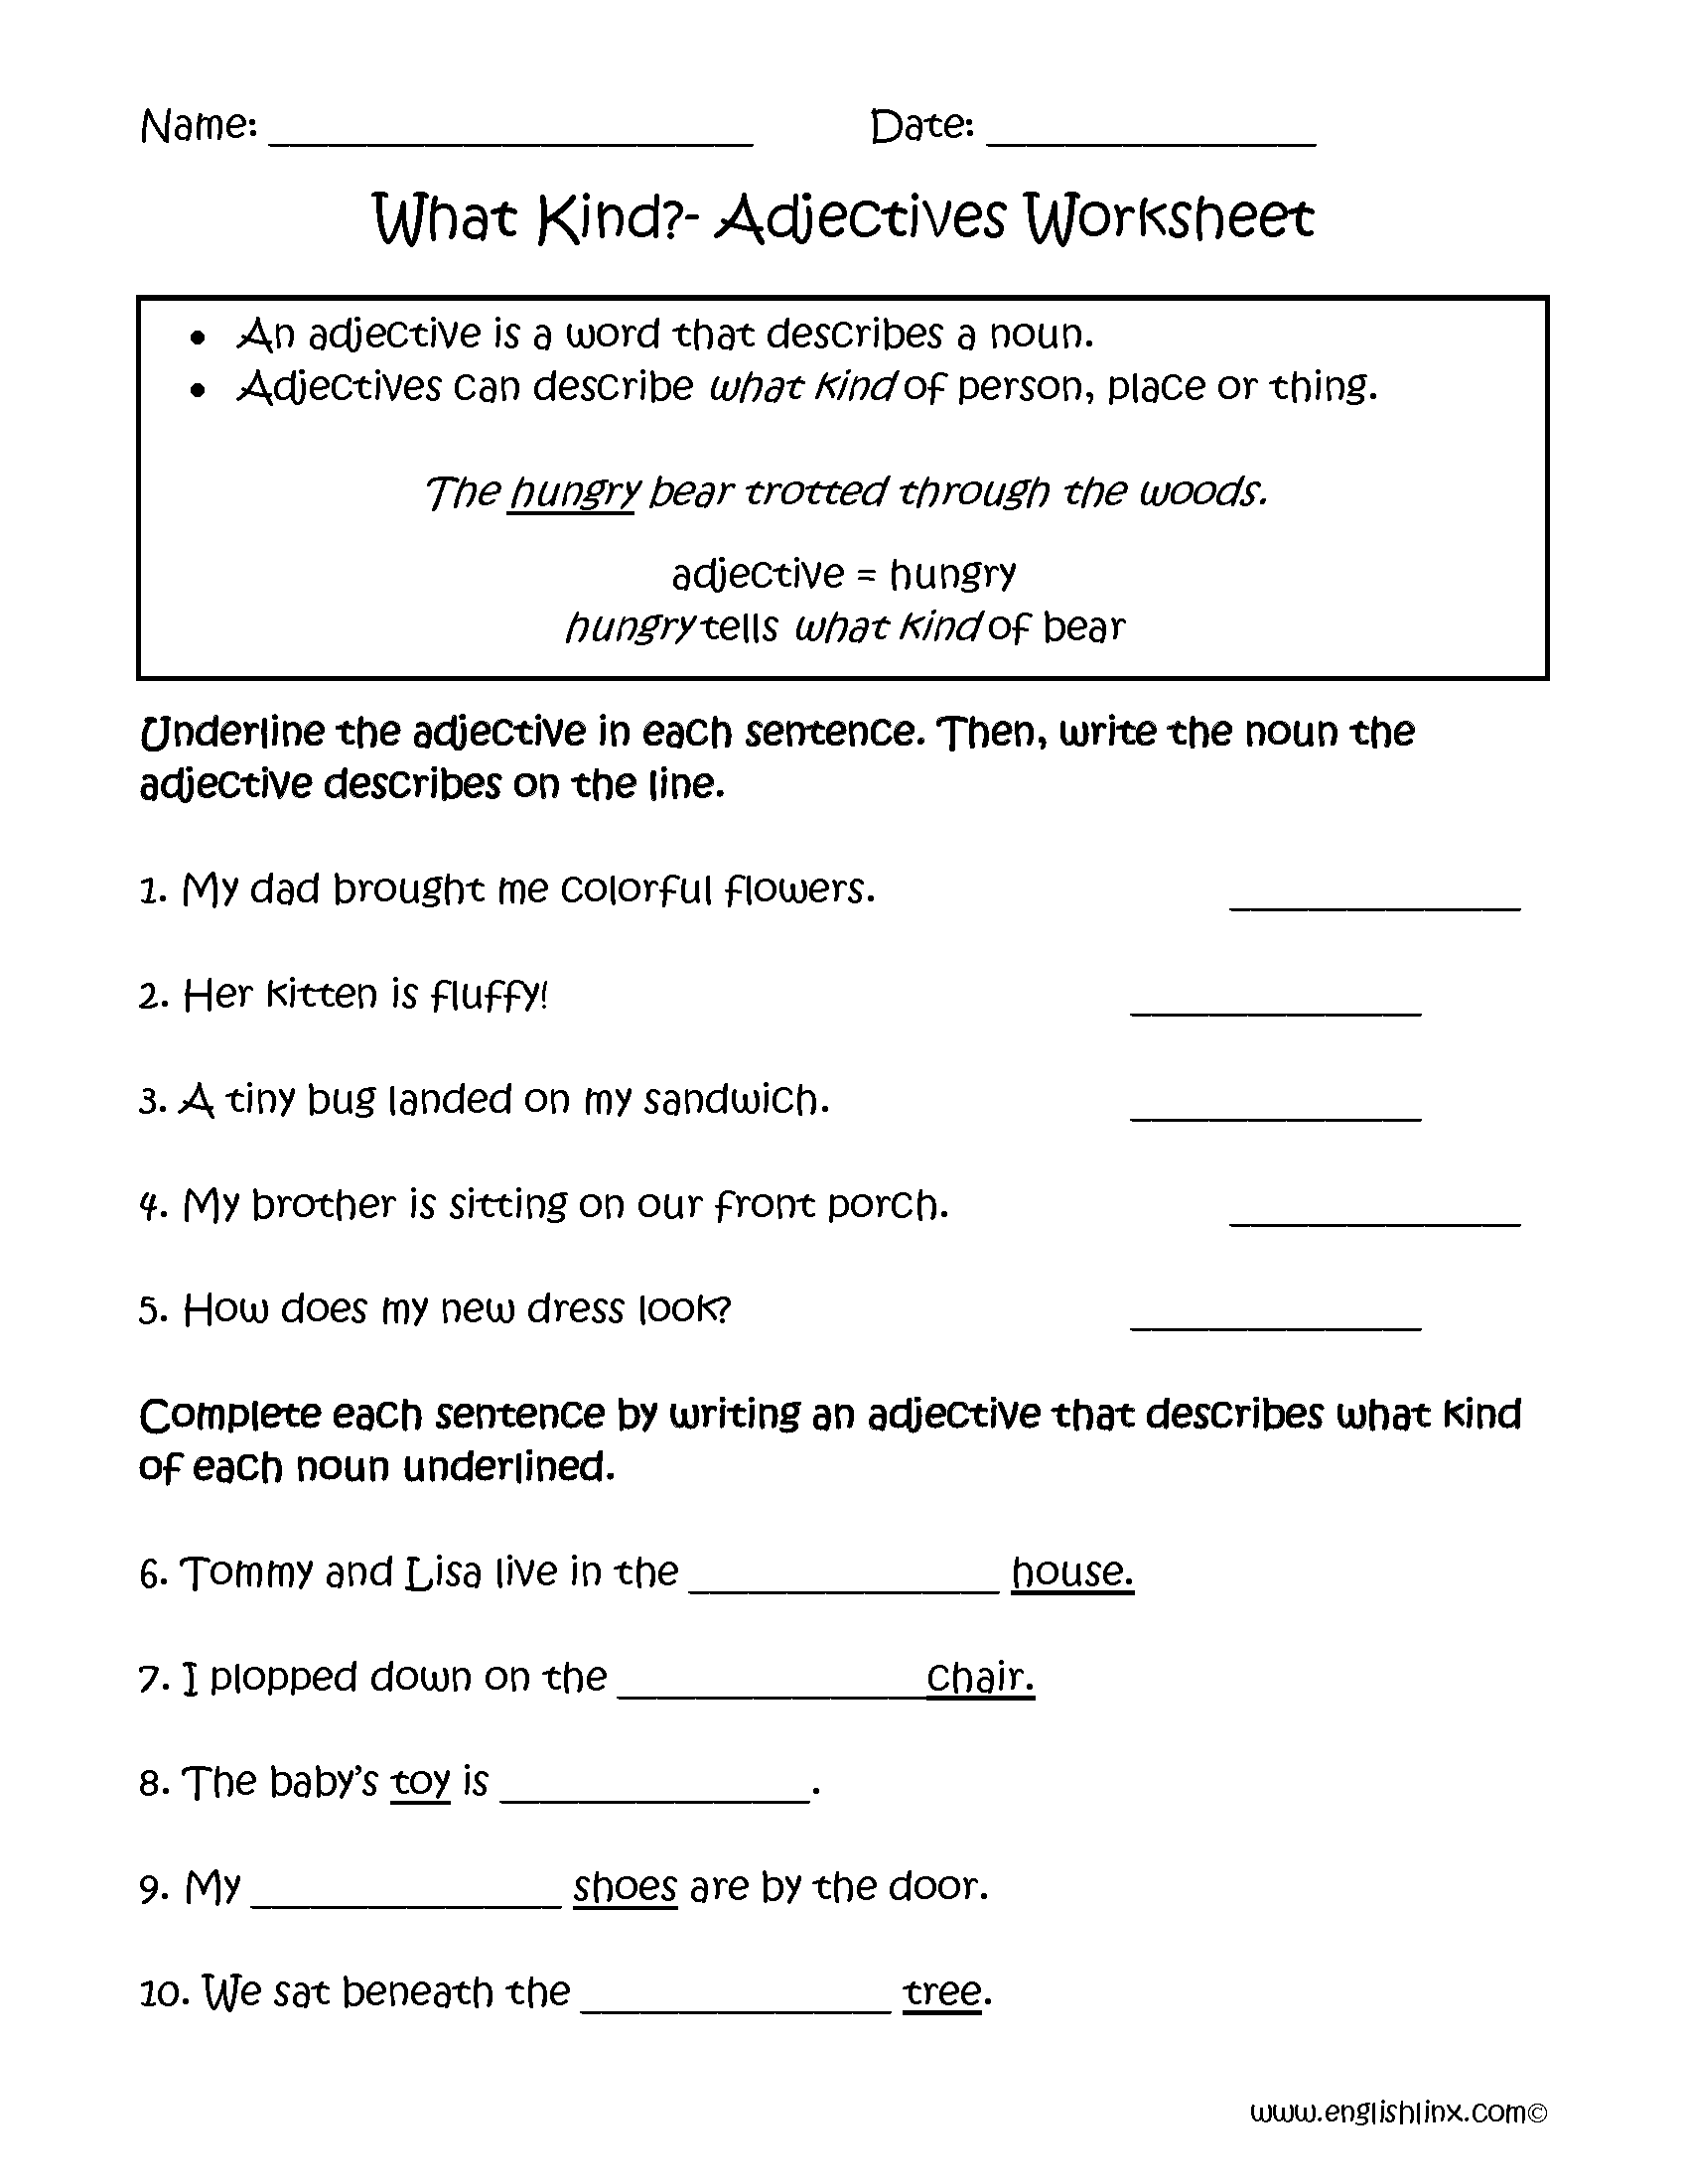 What Kind Adjectives Worksheets With Images